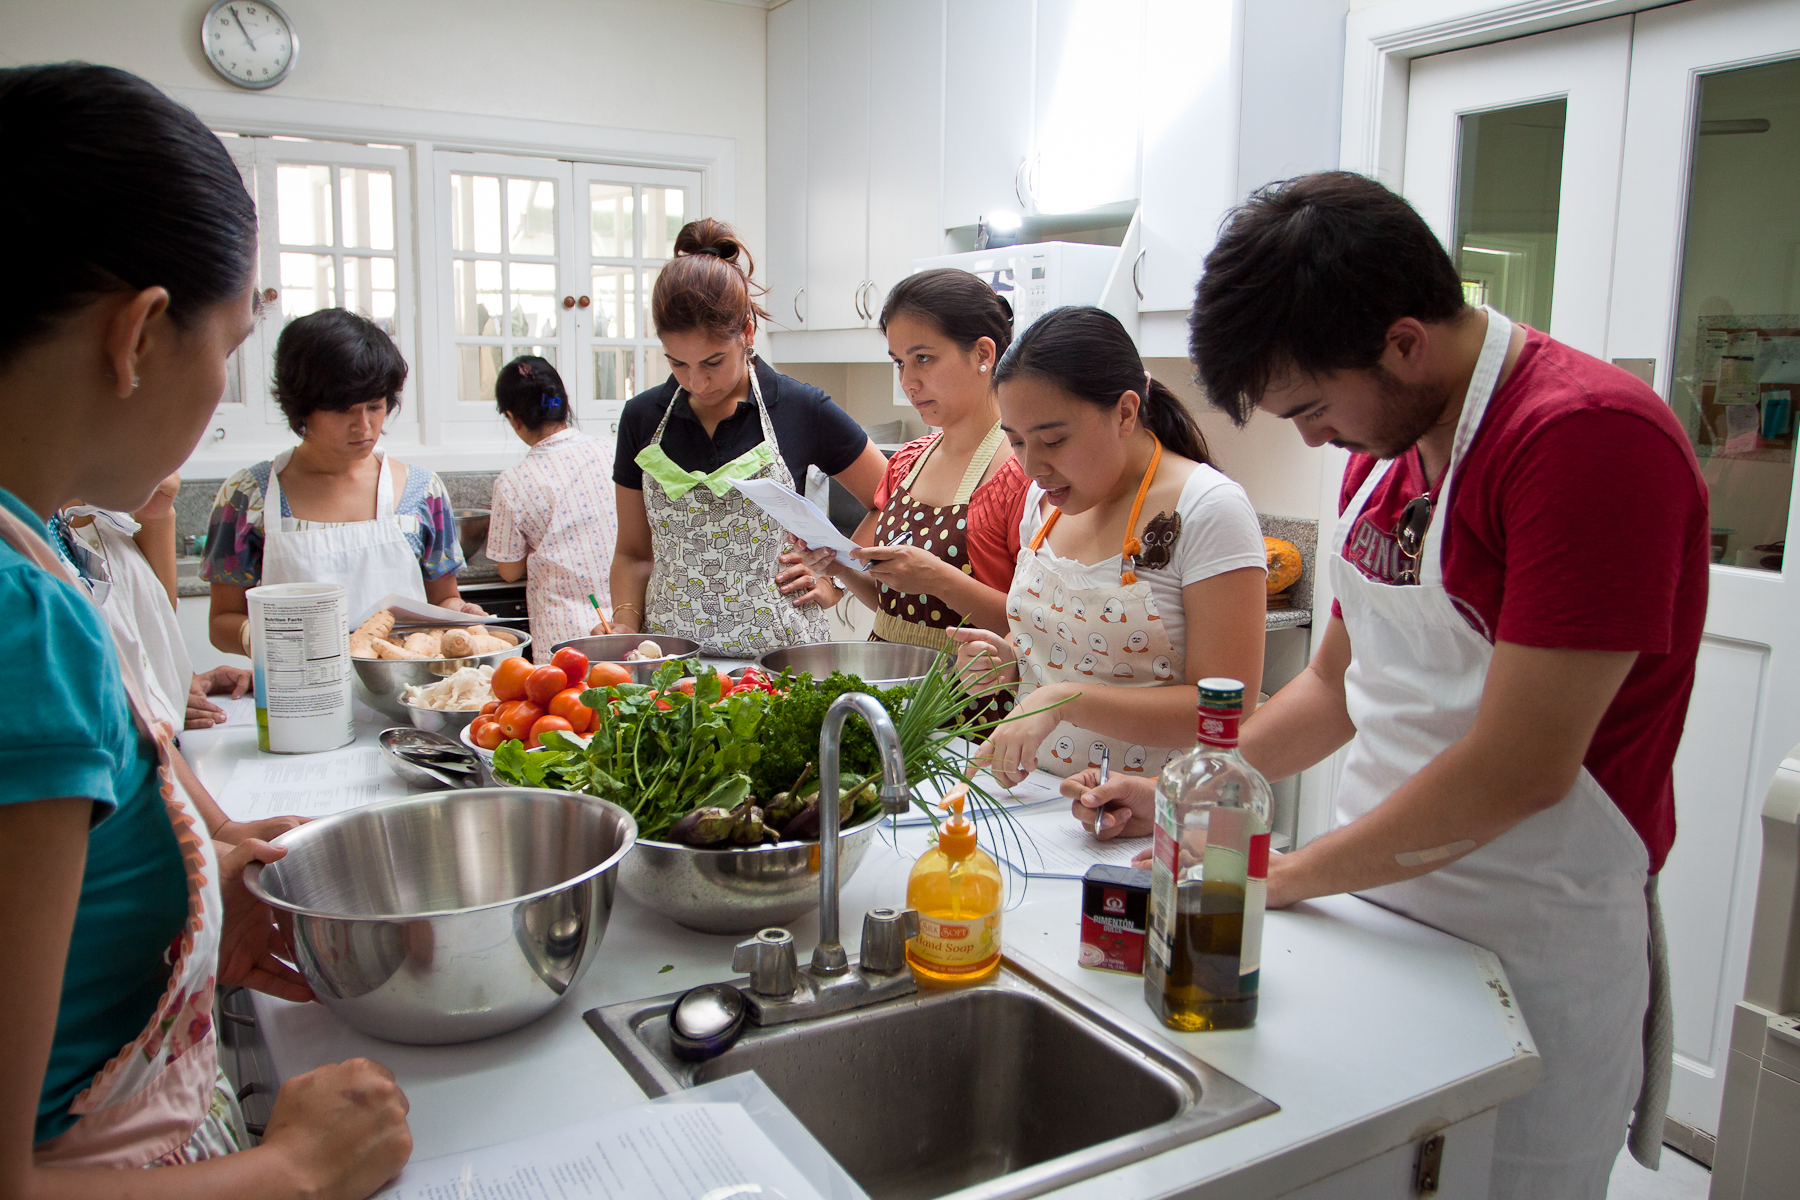 Classes kitchen revolution - Estudios de cocina ...